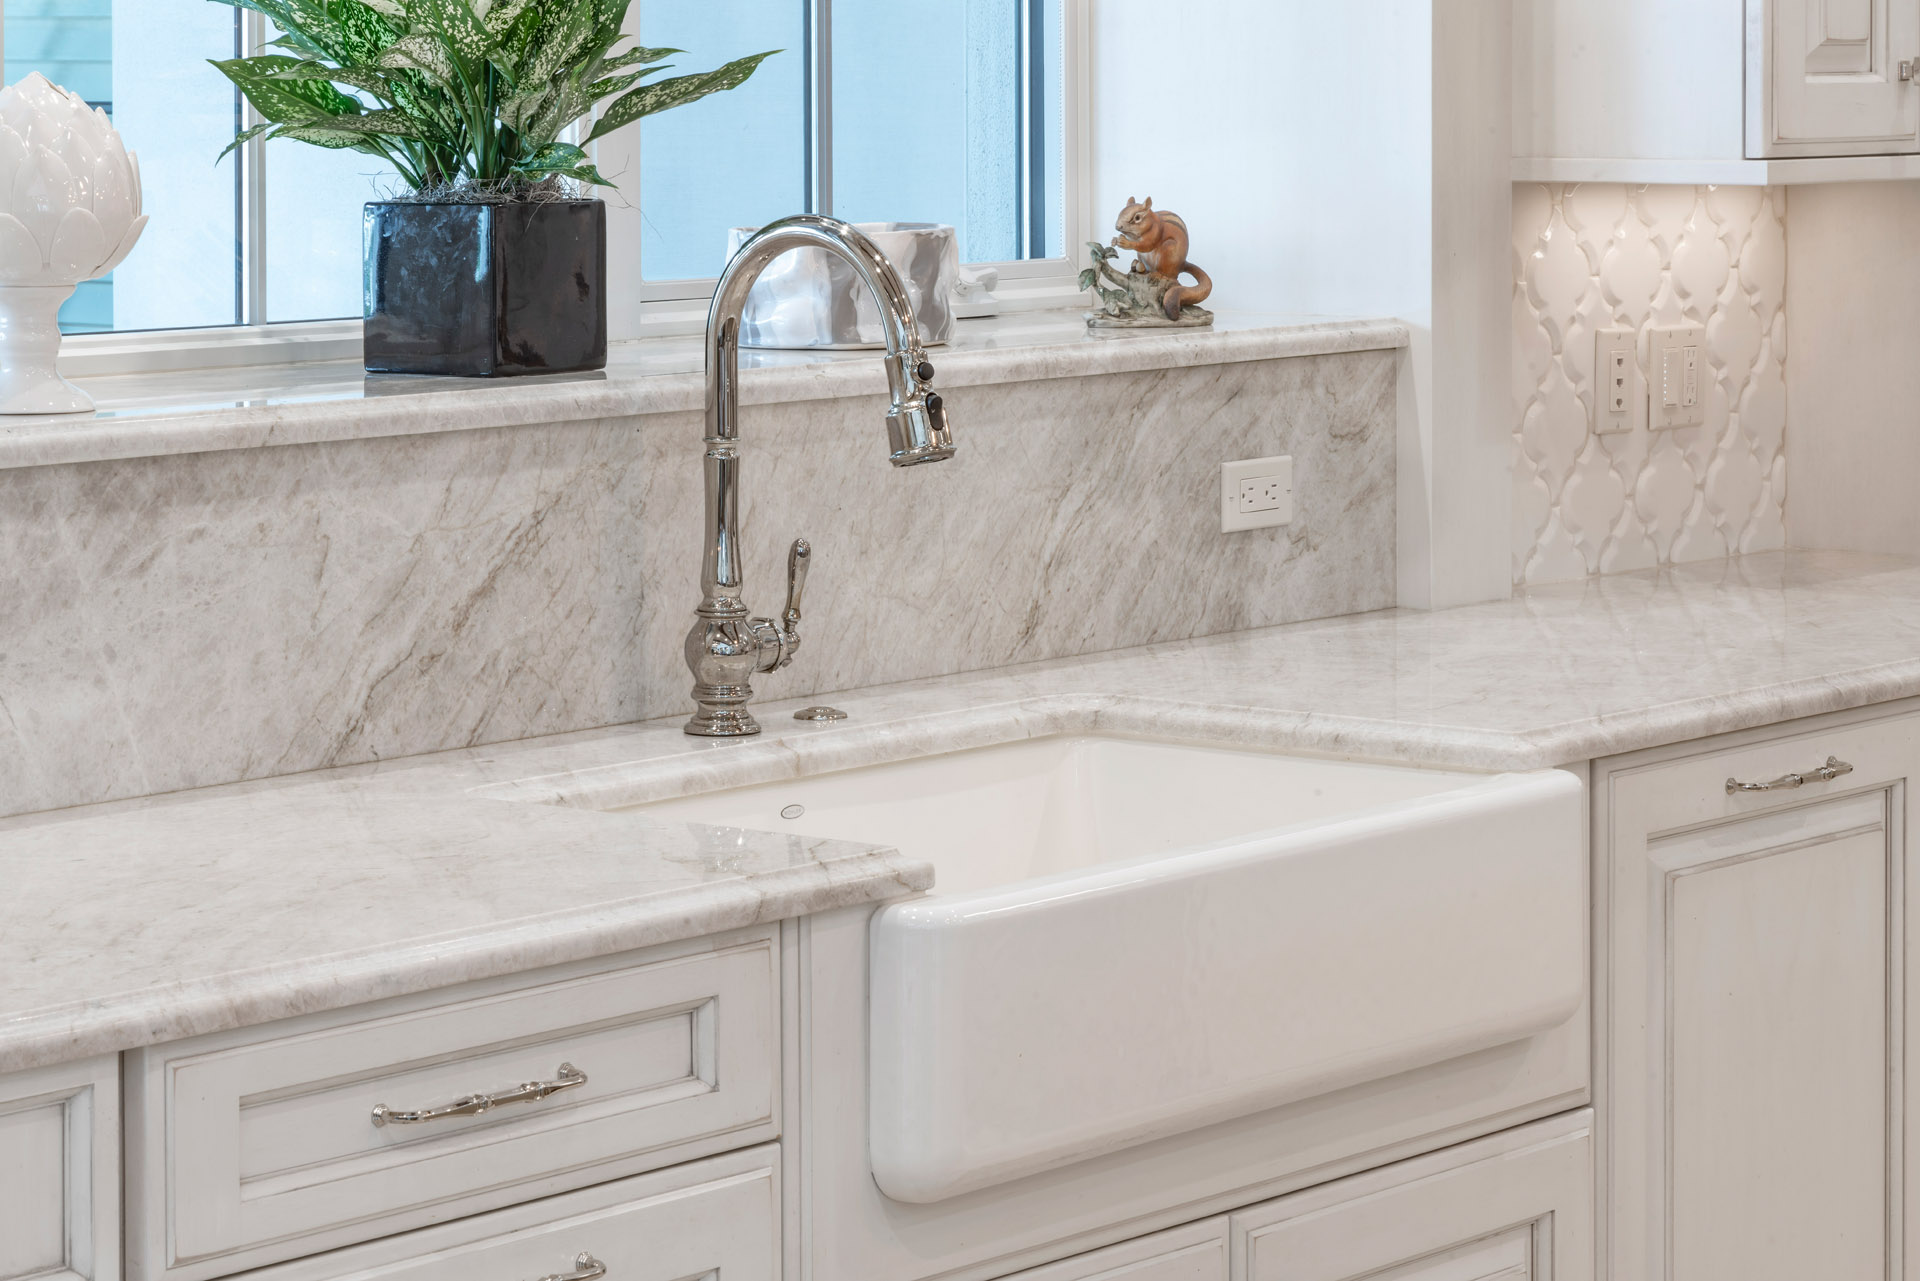 custom bathroom counter and sink designed and built by Einheit Homes